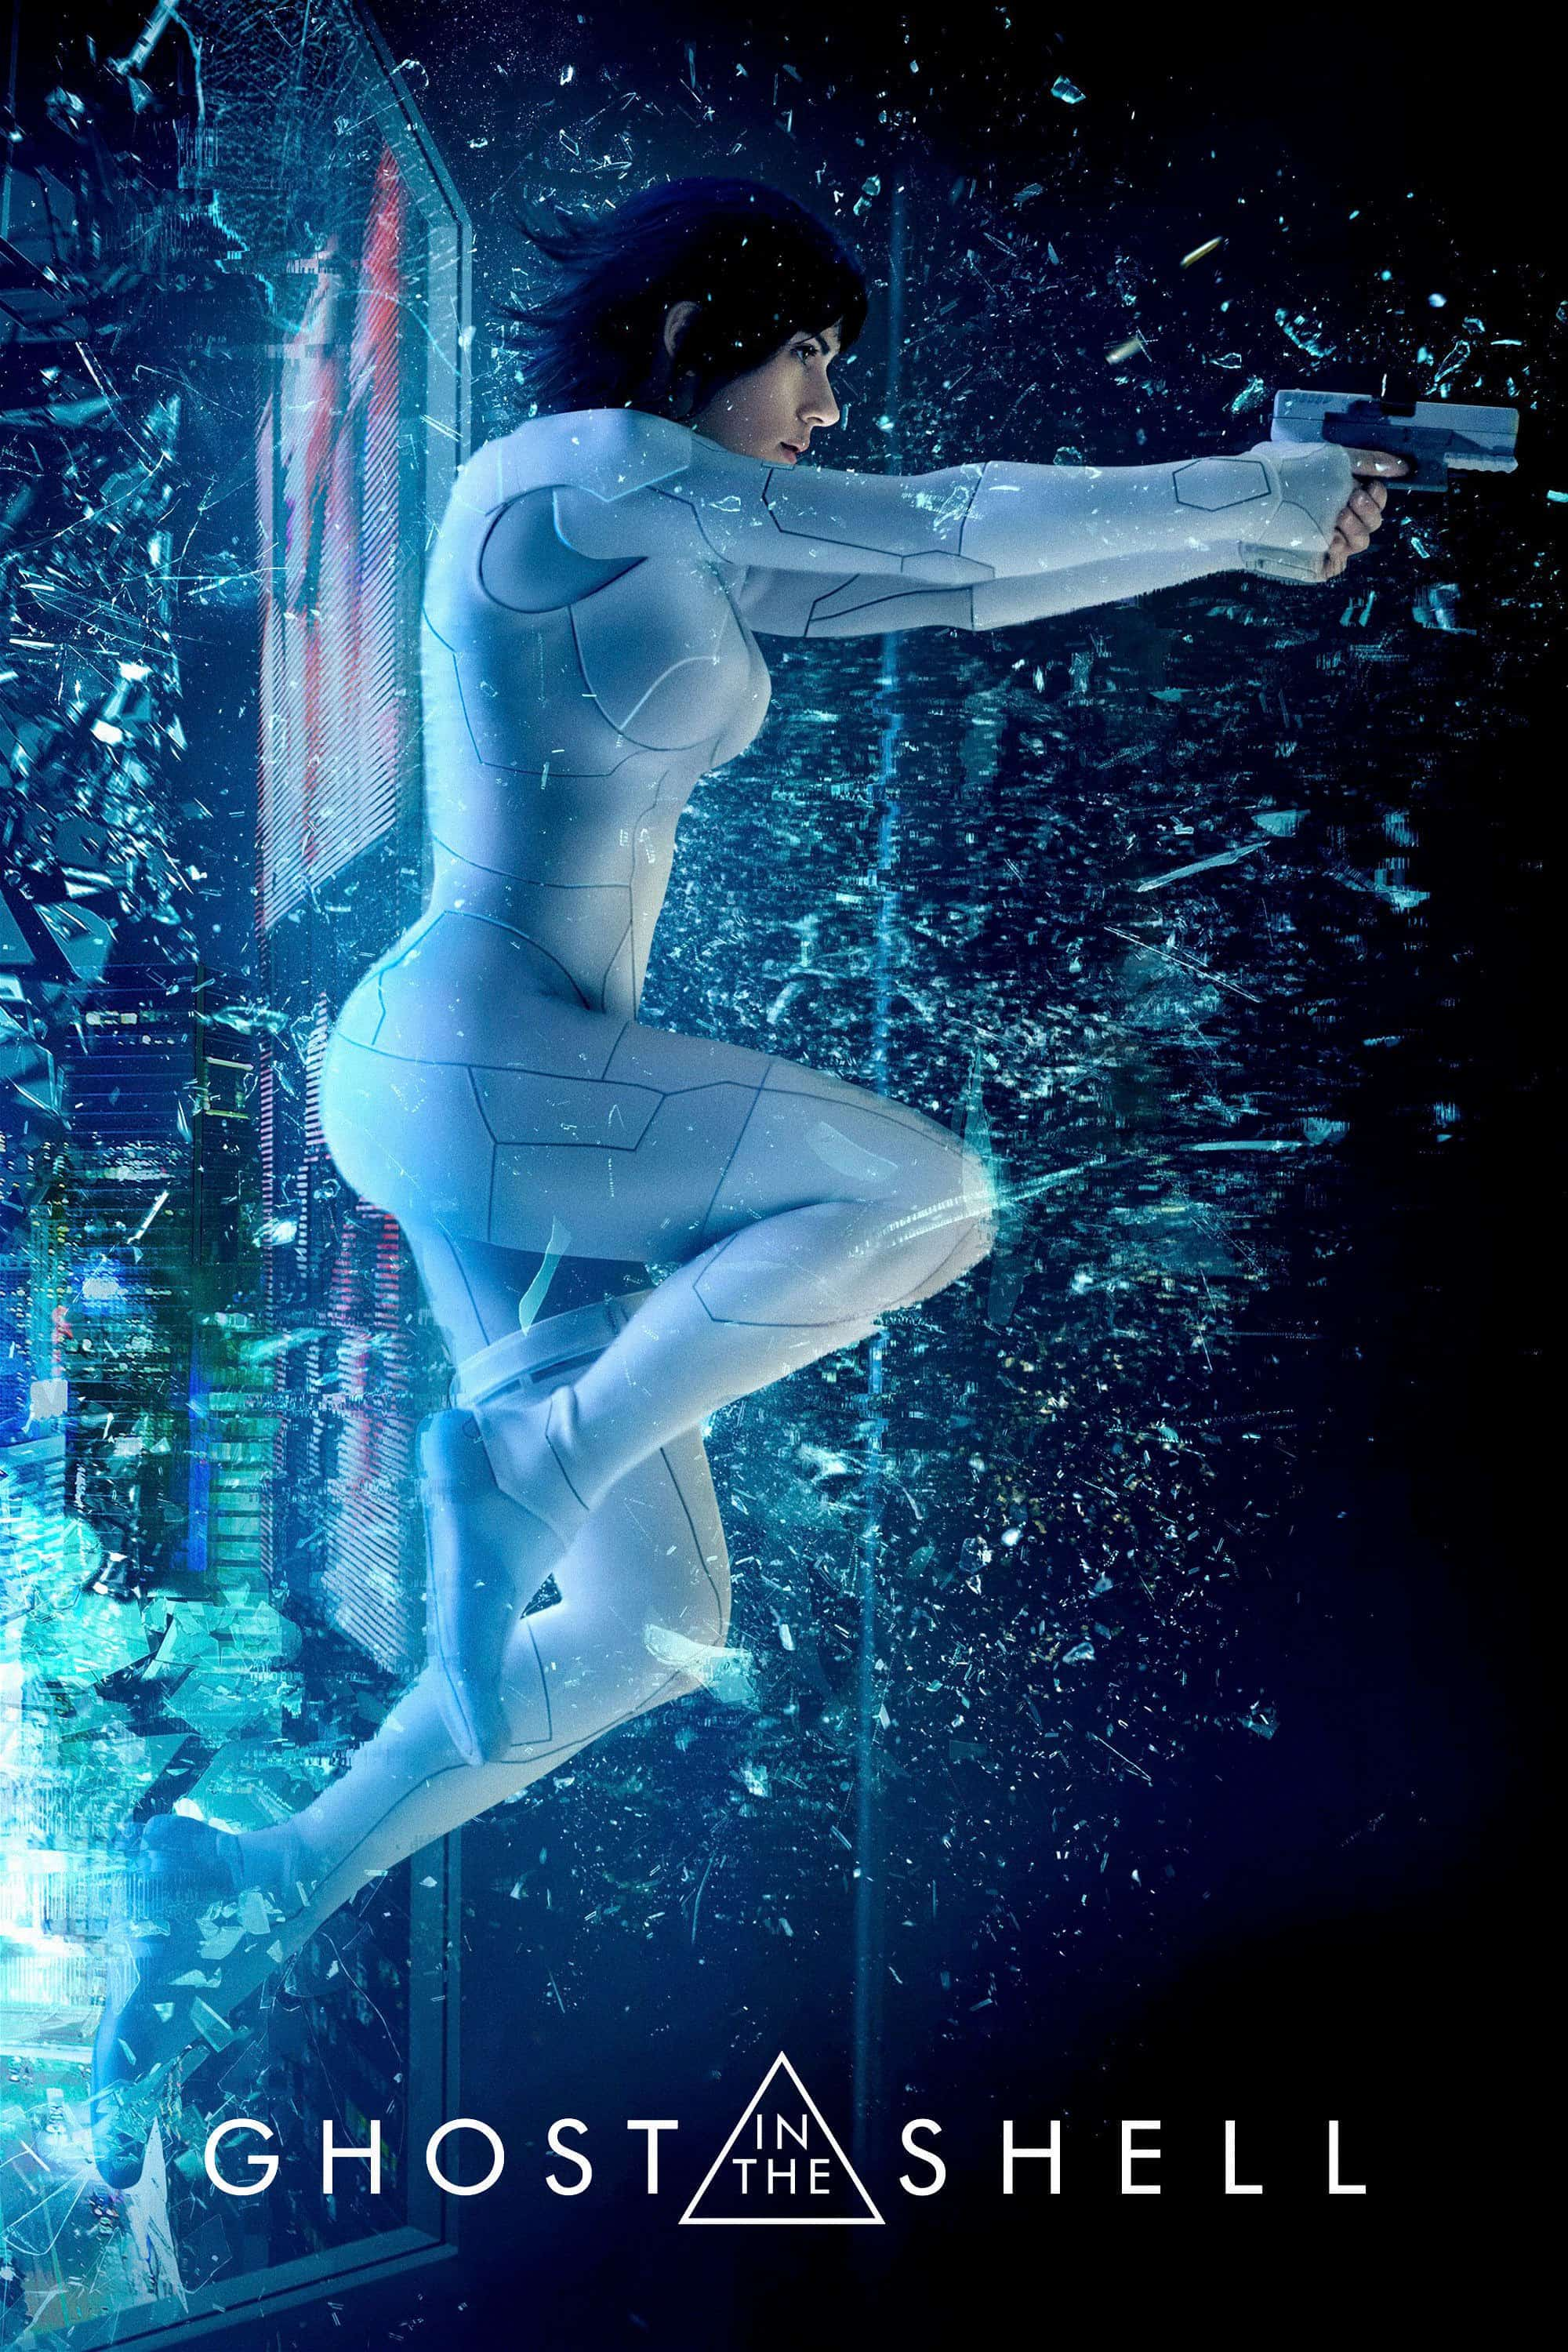 Ghost in the Shell, 2017